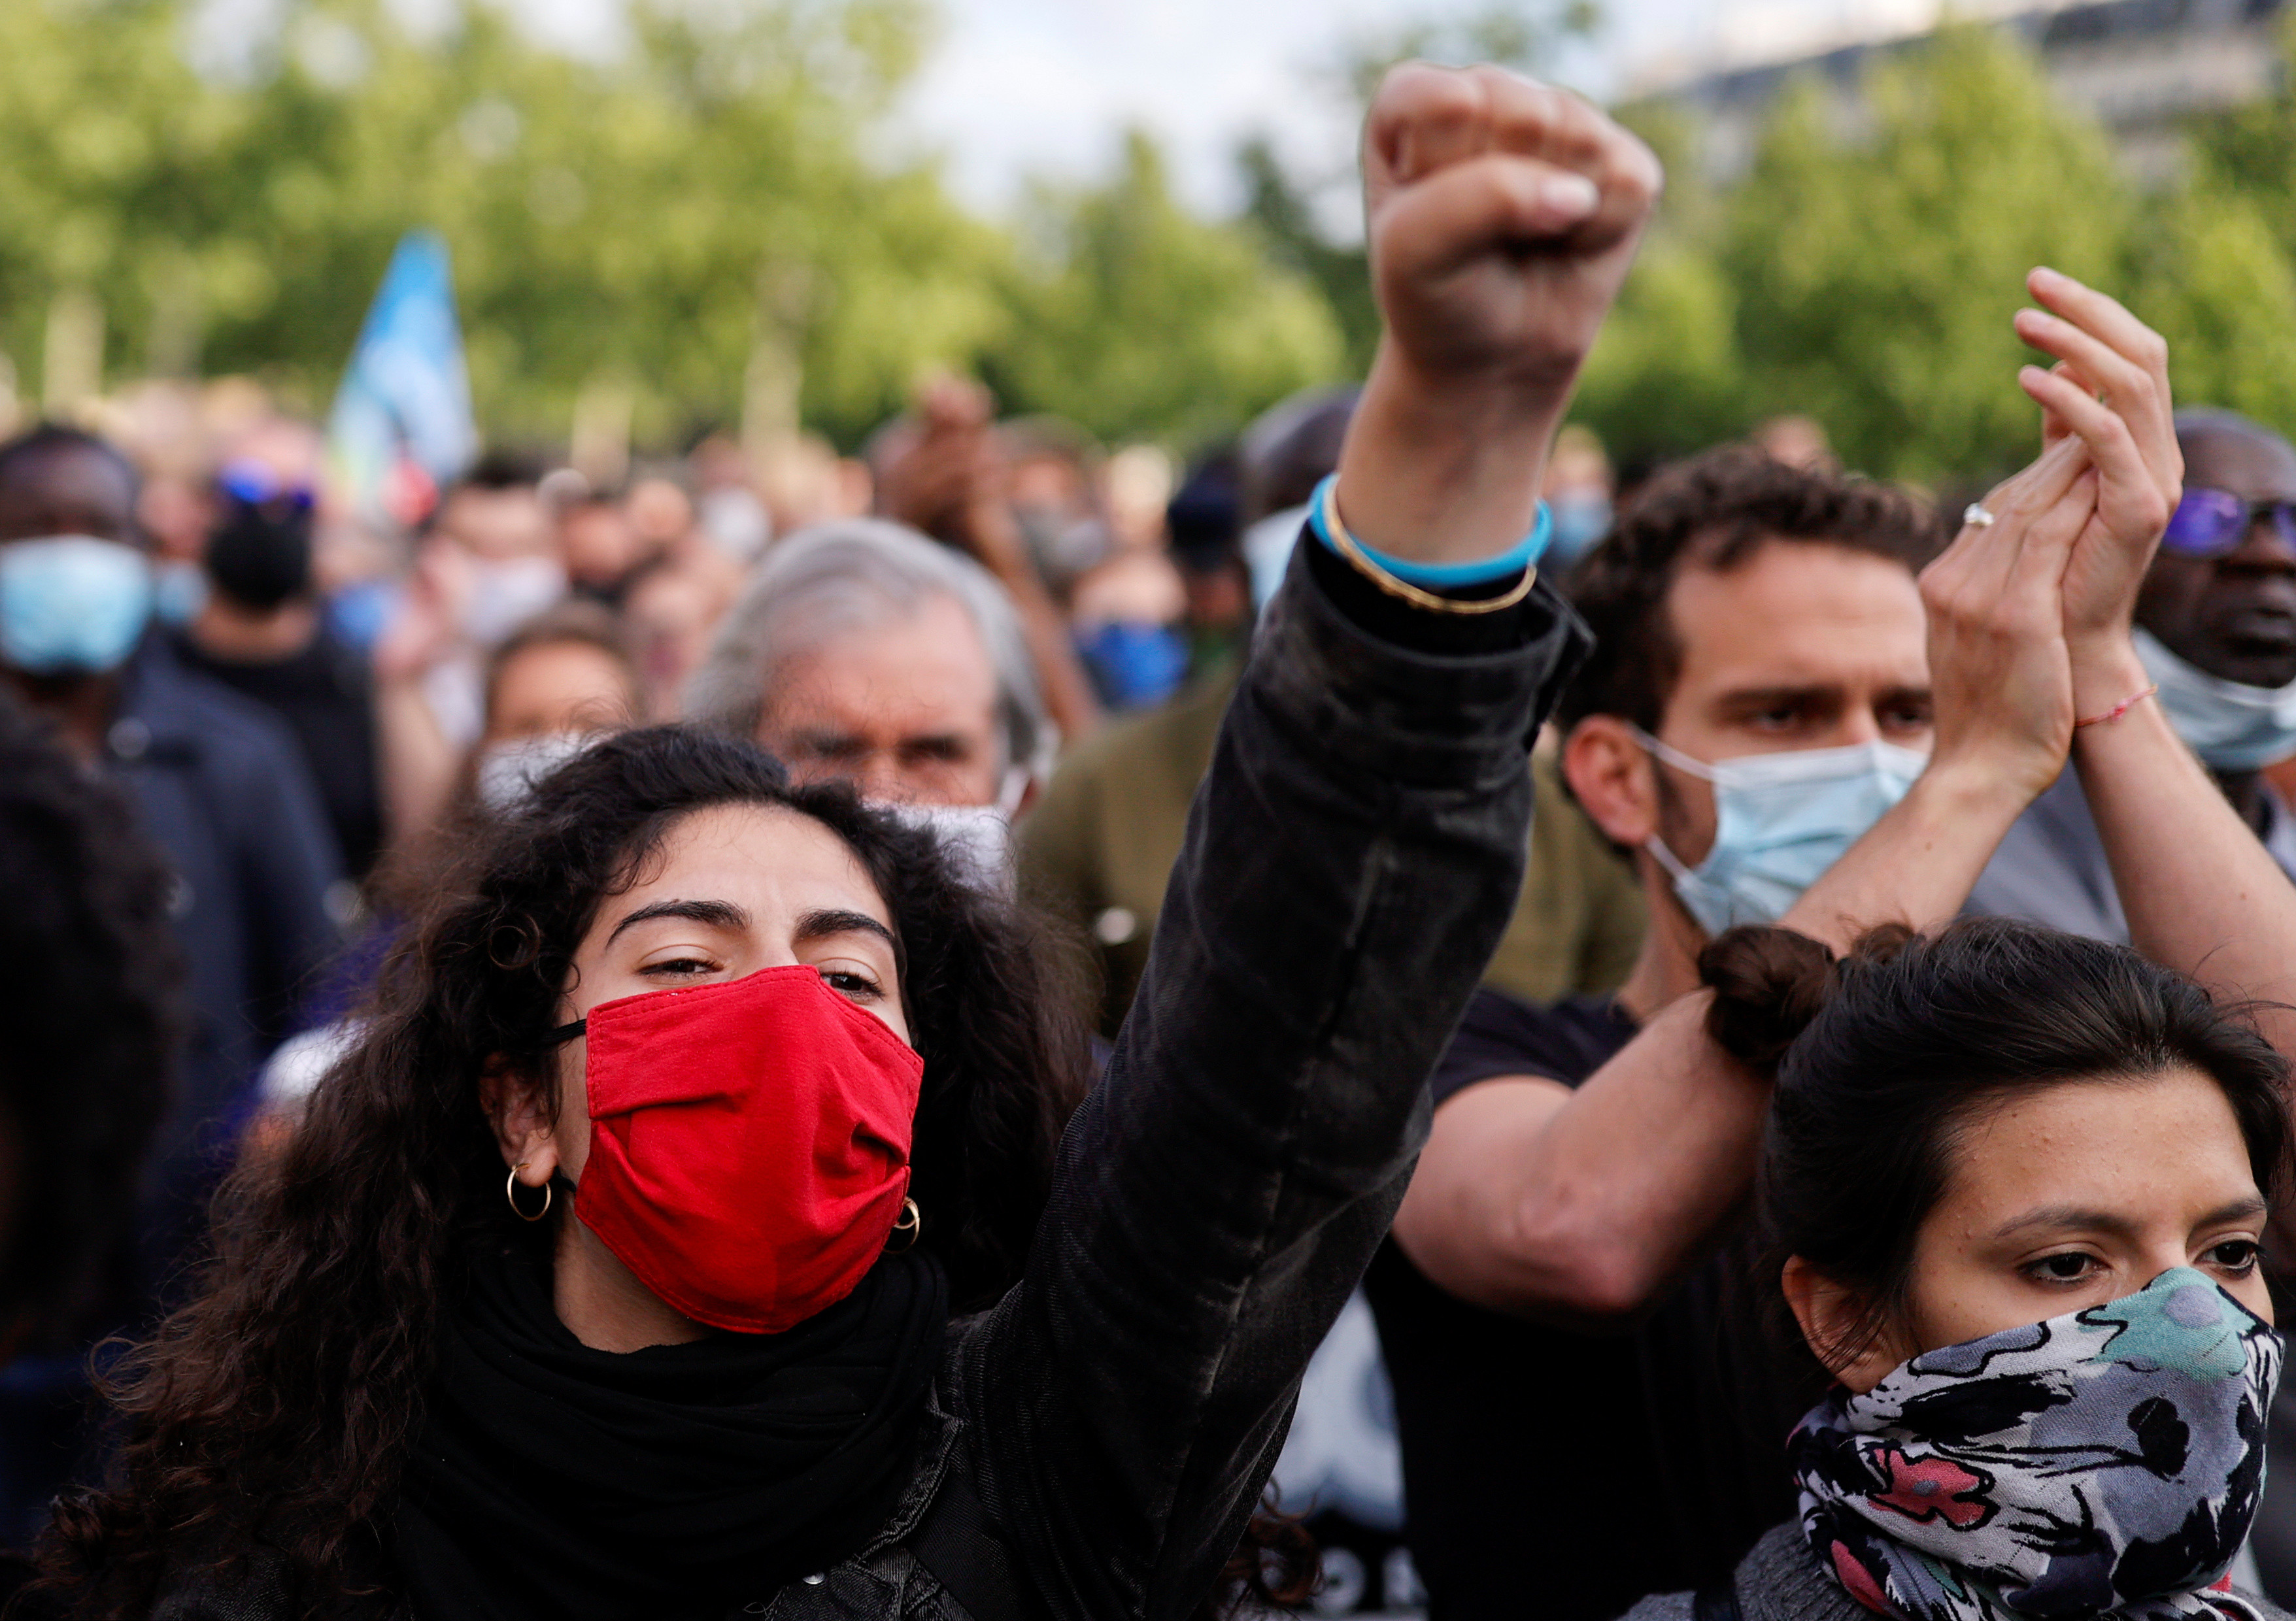 Demonstrators wearing protective face masks raise their fists during a protest at the Place de la Republique square, following the death of George Floyd in Minneapolis police custody, in Paris, France June 9, 2020. REUTERS/Christian Hartmann - RC2T5H9DUR2I